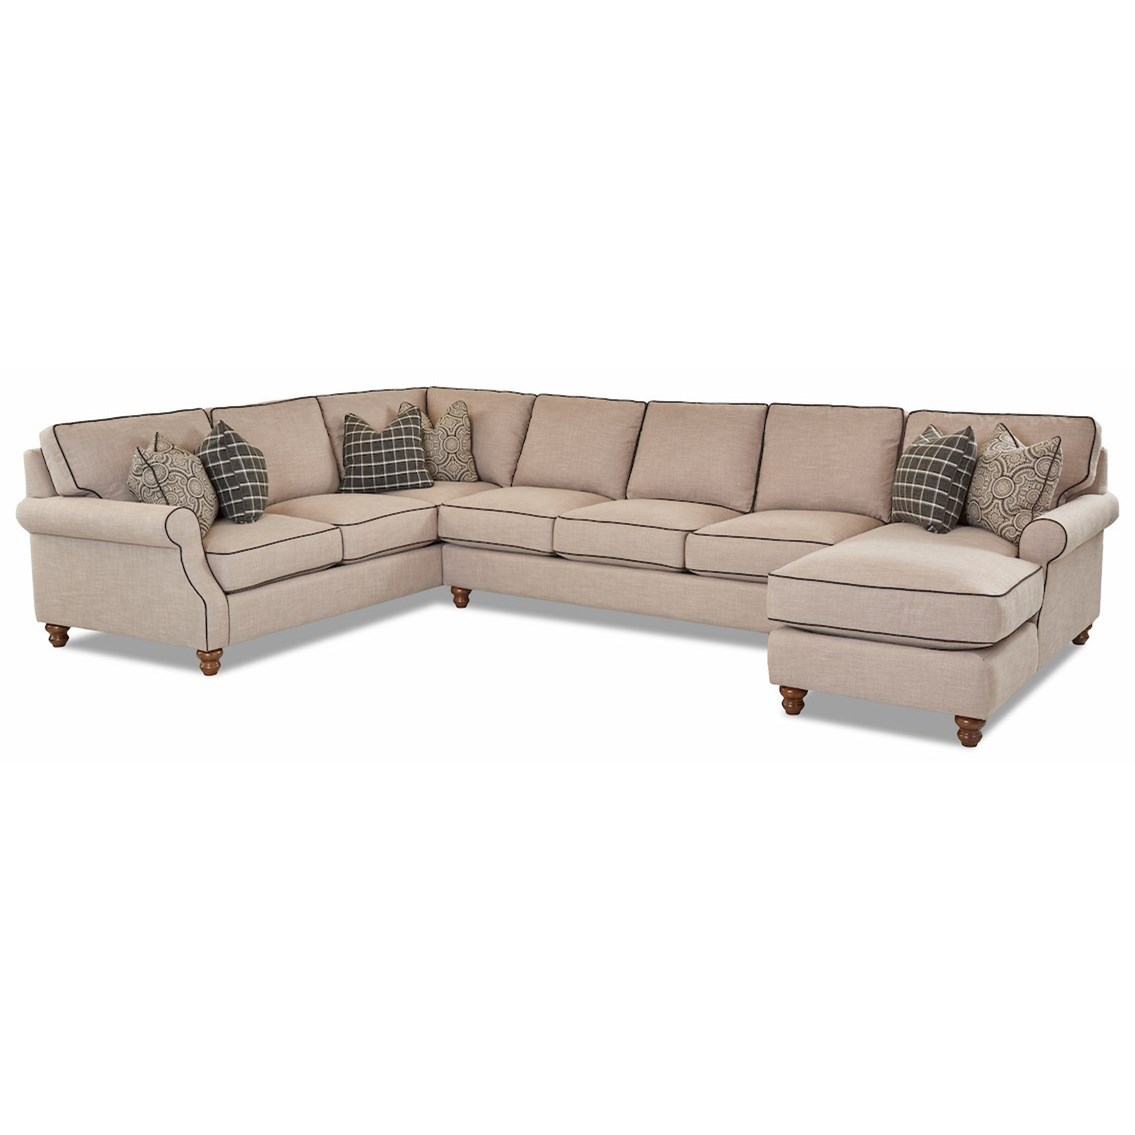 Traditional 3 Piece Sectional Sofa with RAF Chaise